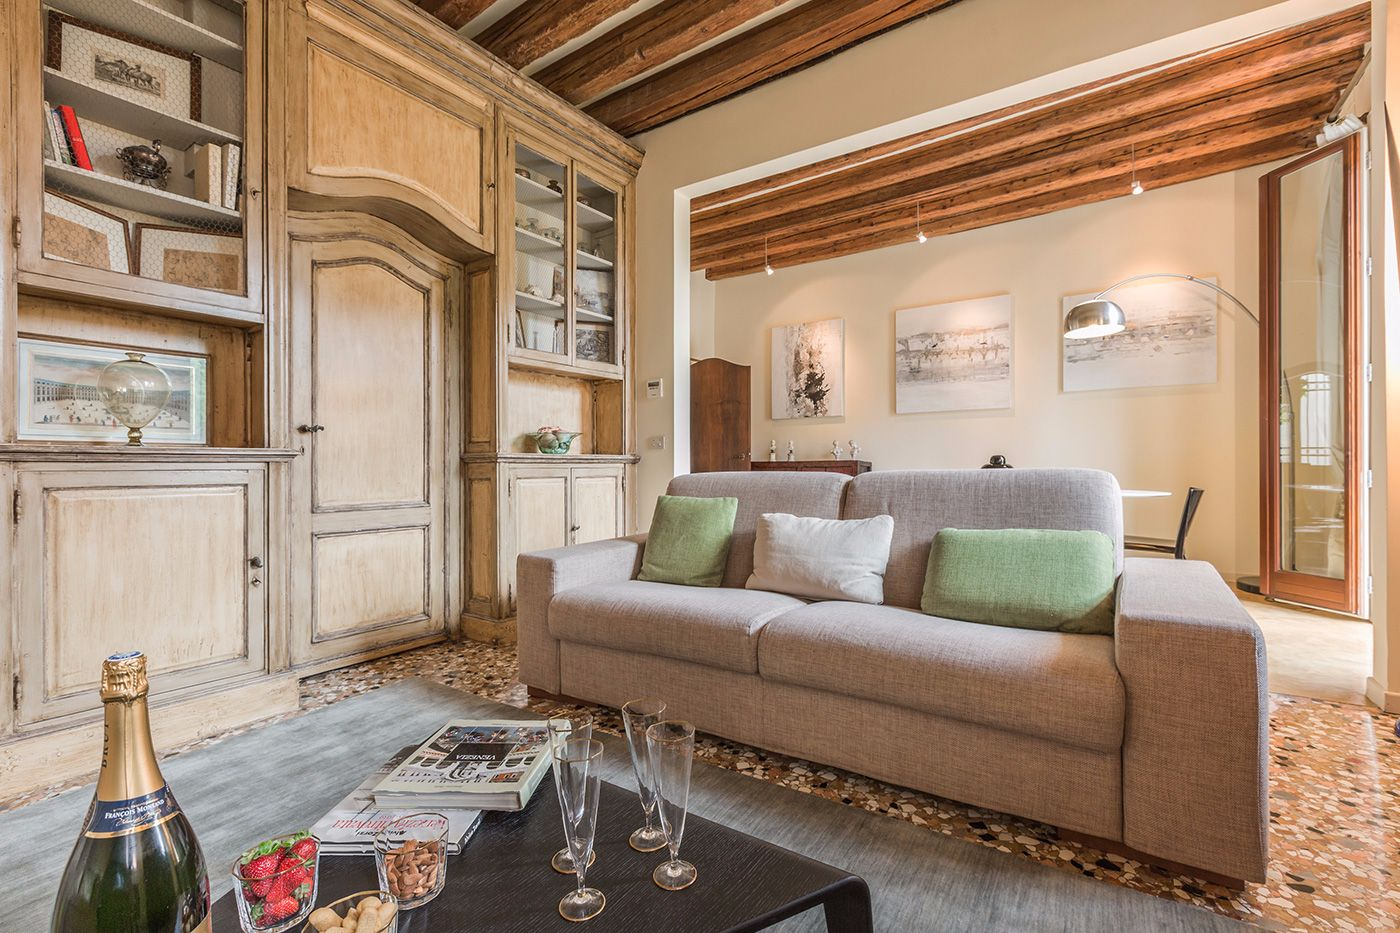 the welcoming living room features a rich boiserie and wooden beamed ceiling